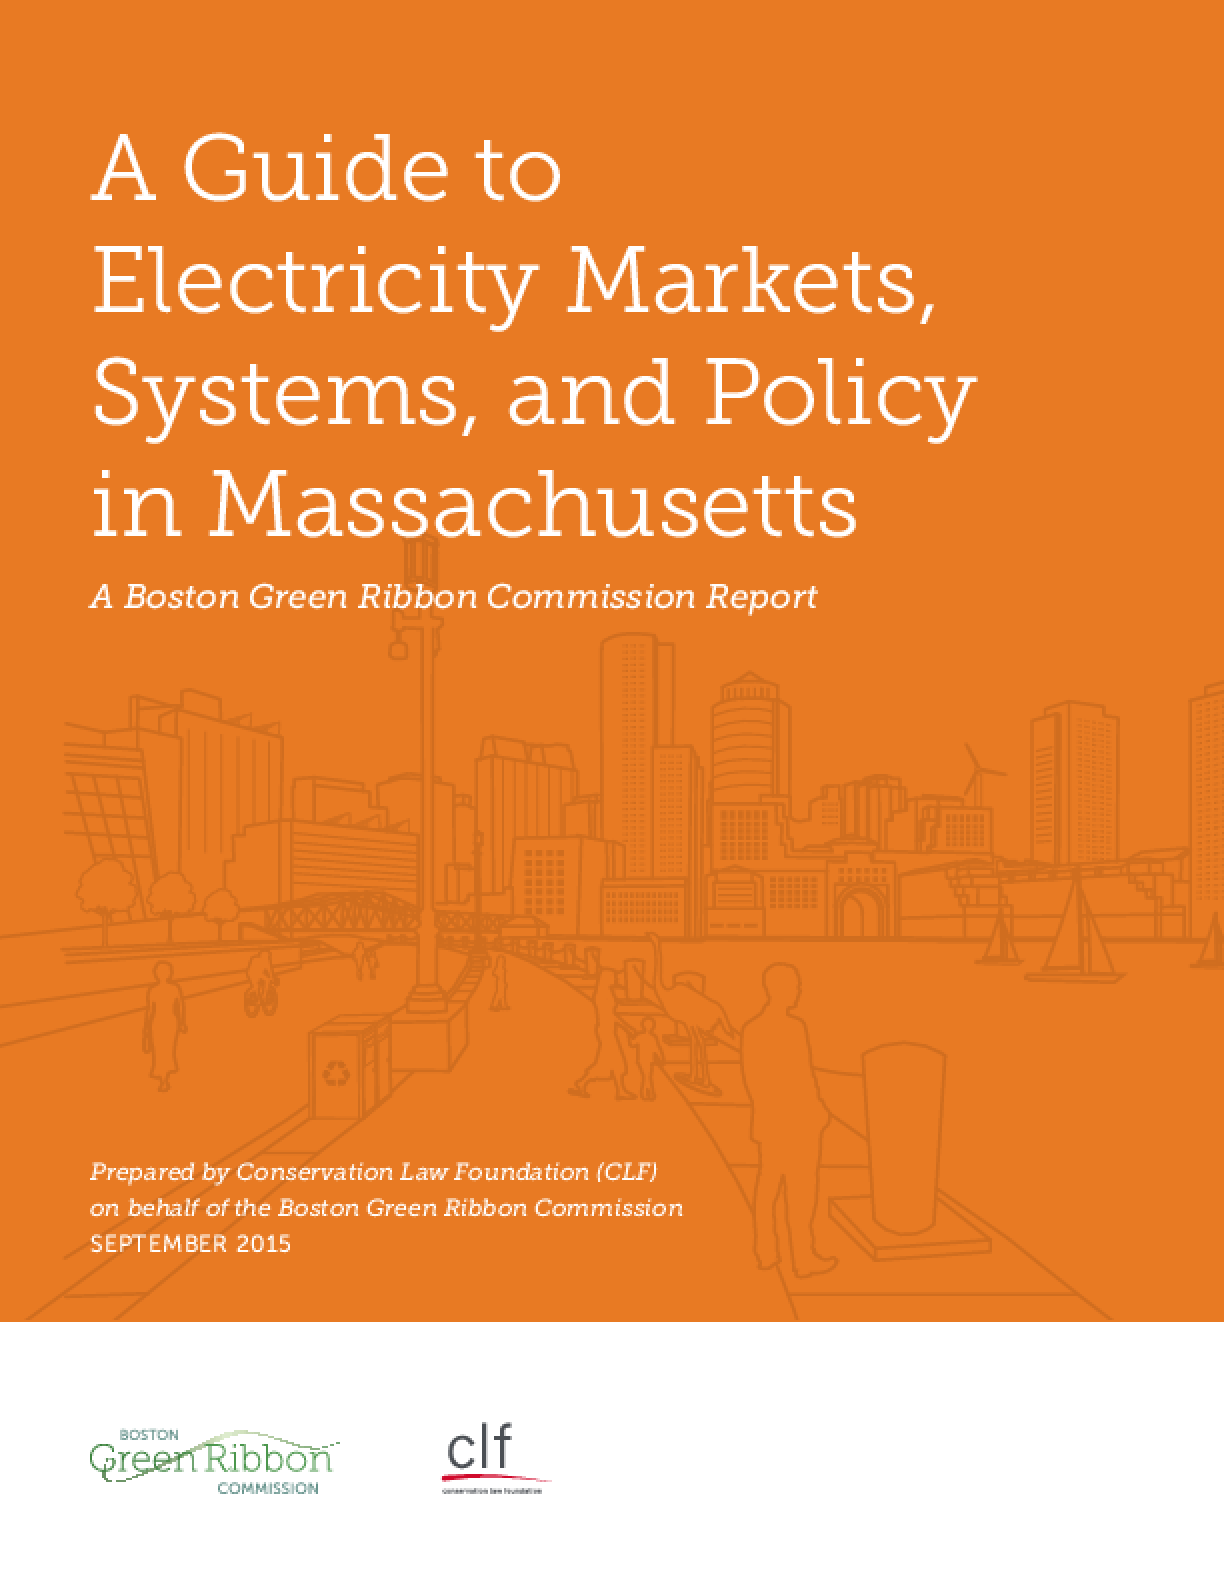 A Guide to Electricity Markets, Systems, and Policy In Massachusetts